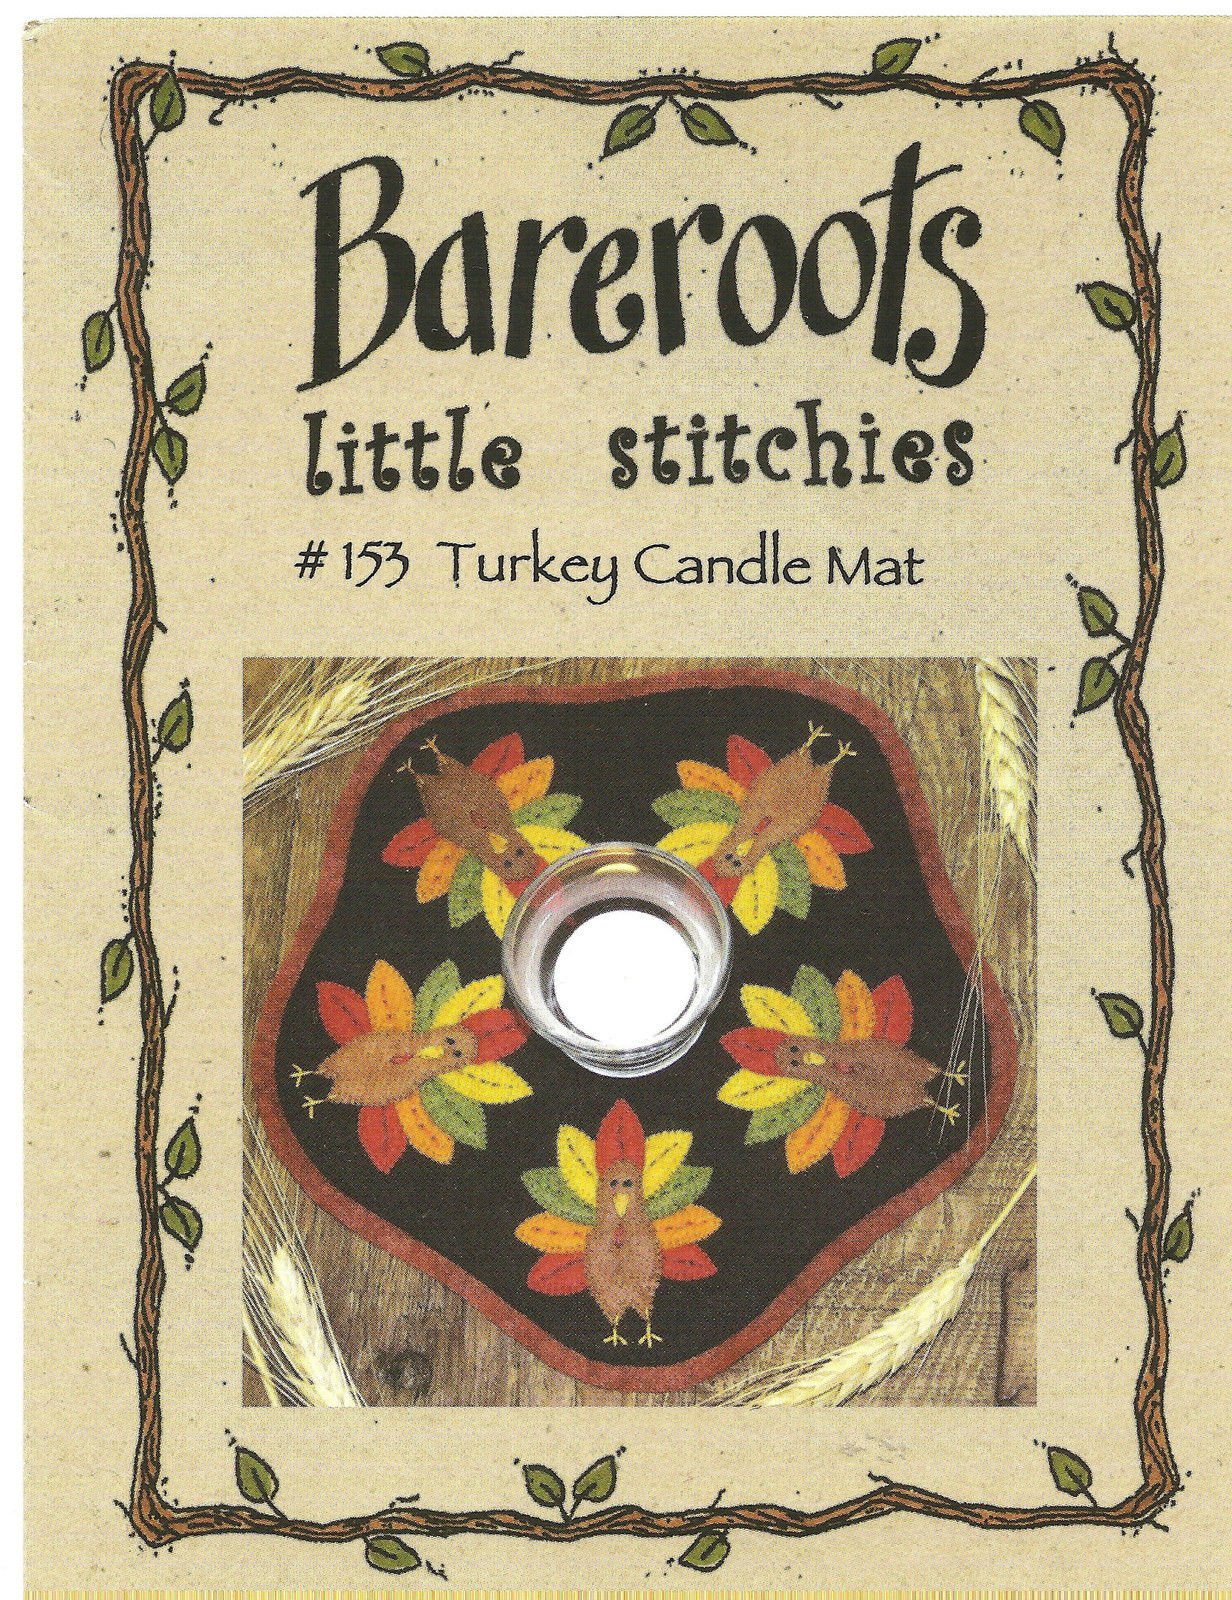 Little Stitchies - Turkeys Candle Mat